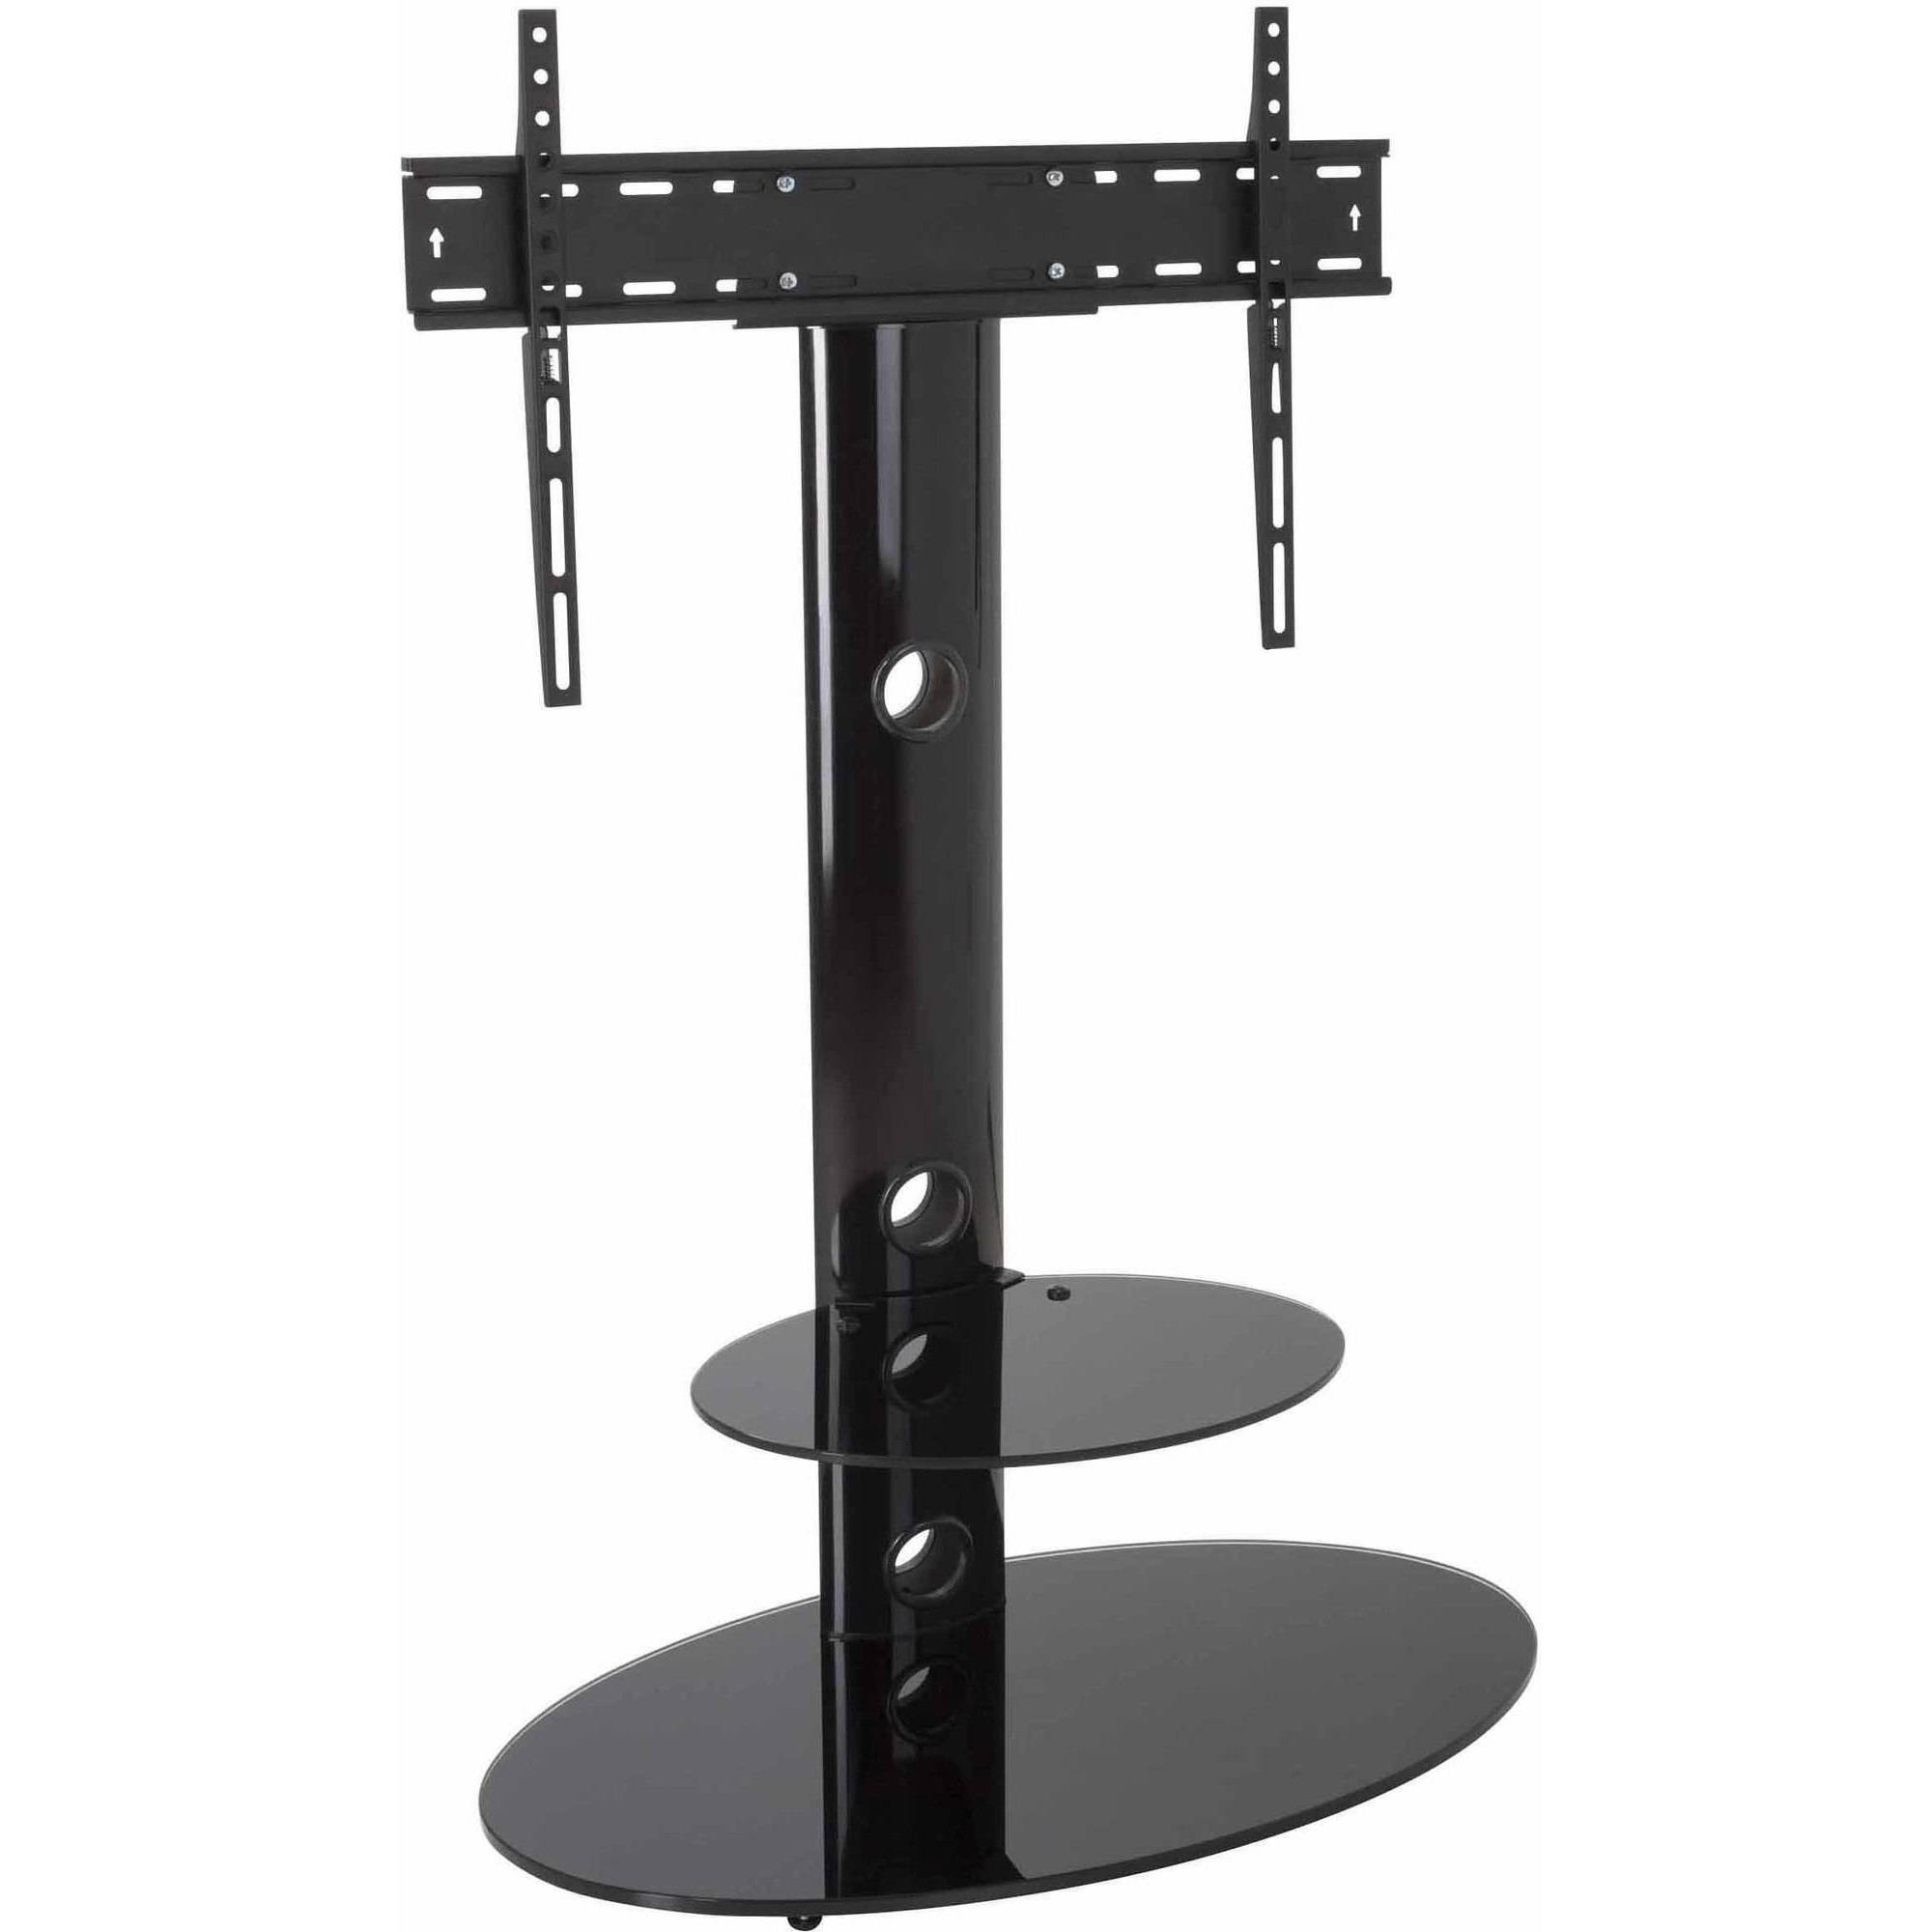 "AVF TV Floor Stand with TV Mounting Column for 32"" to 50"" TVs"